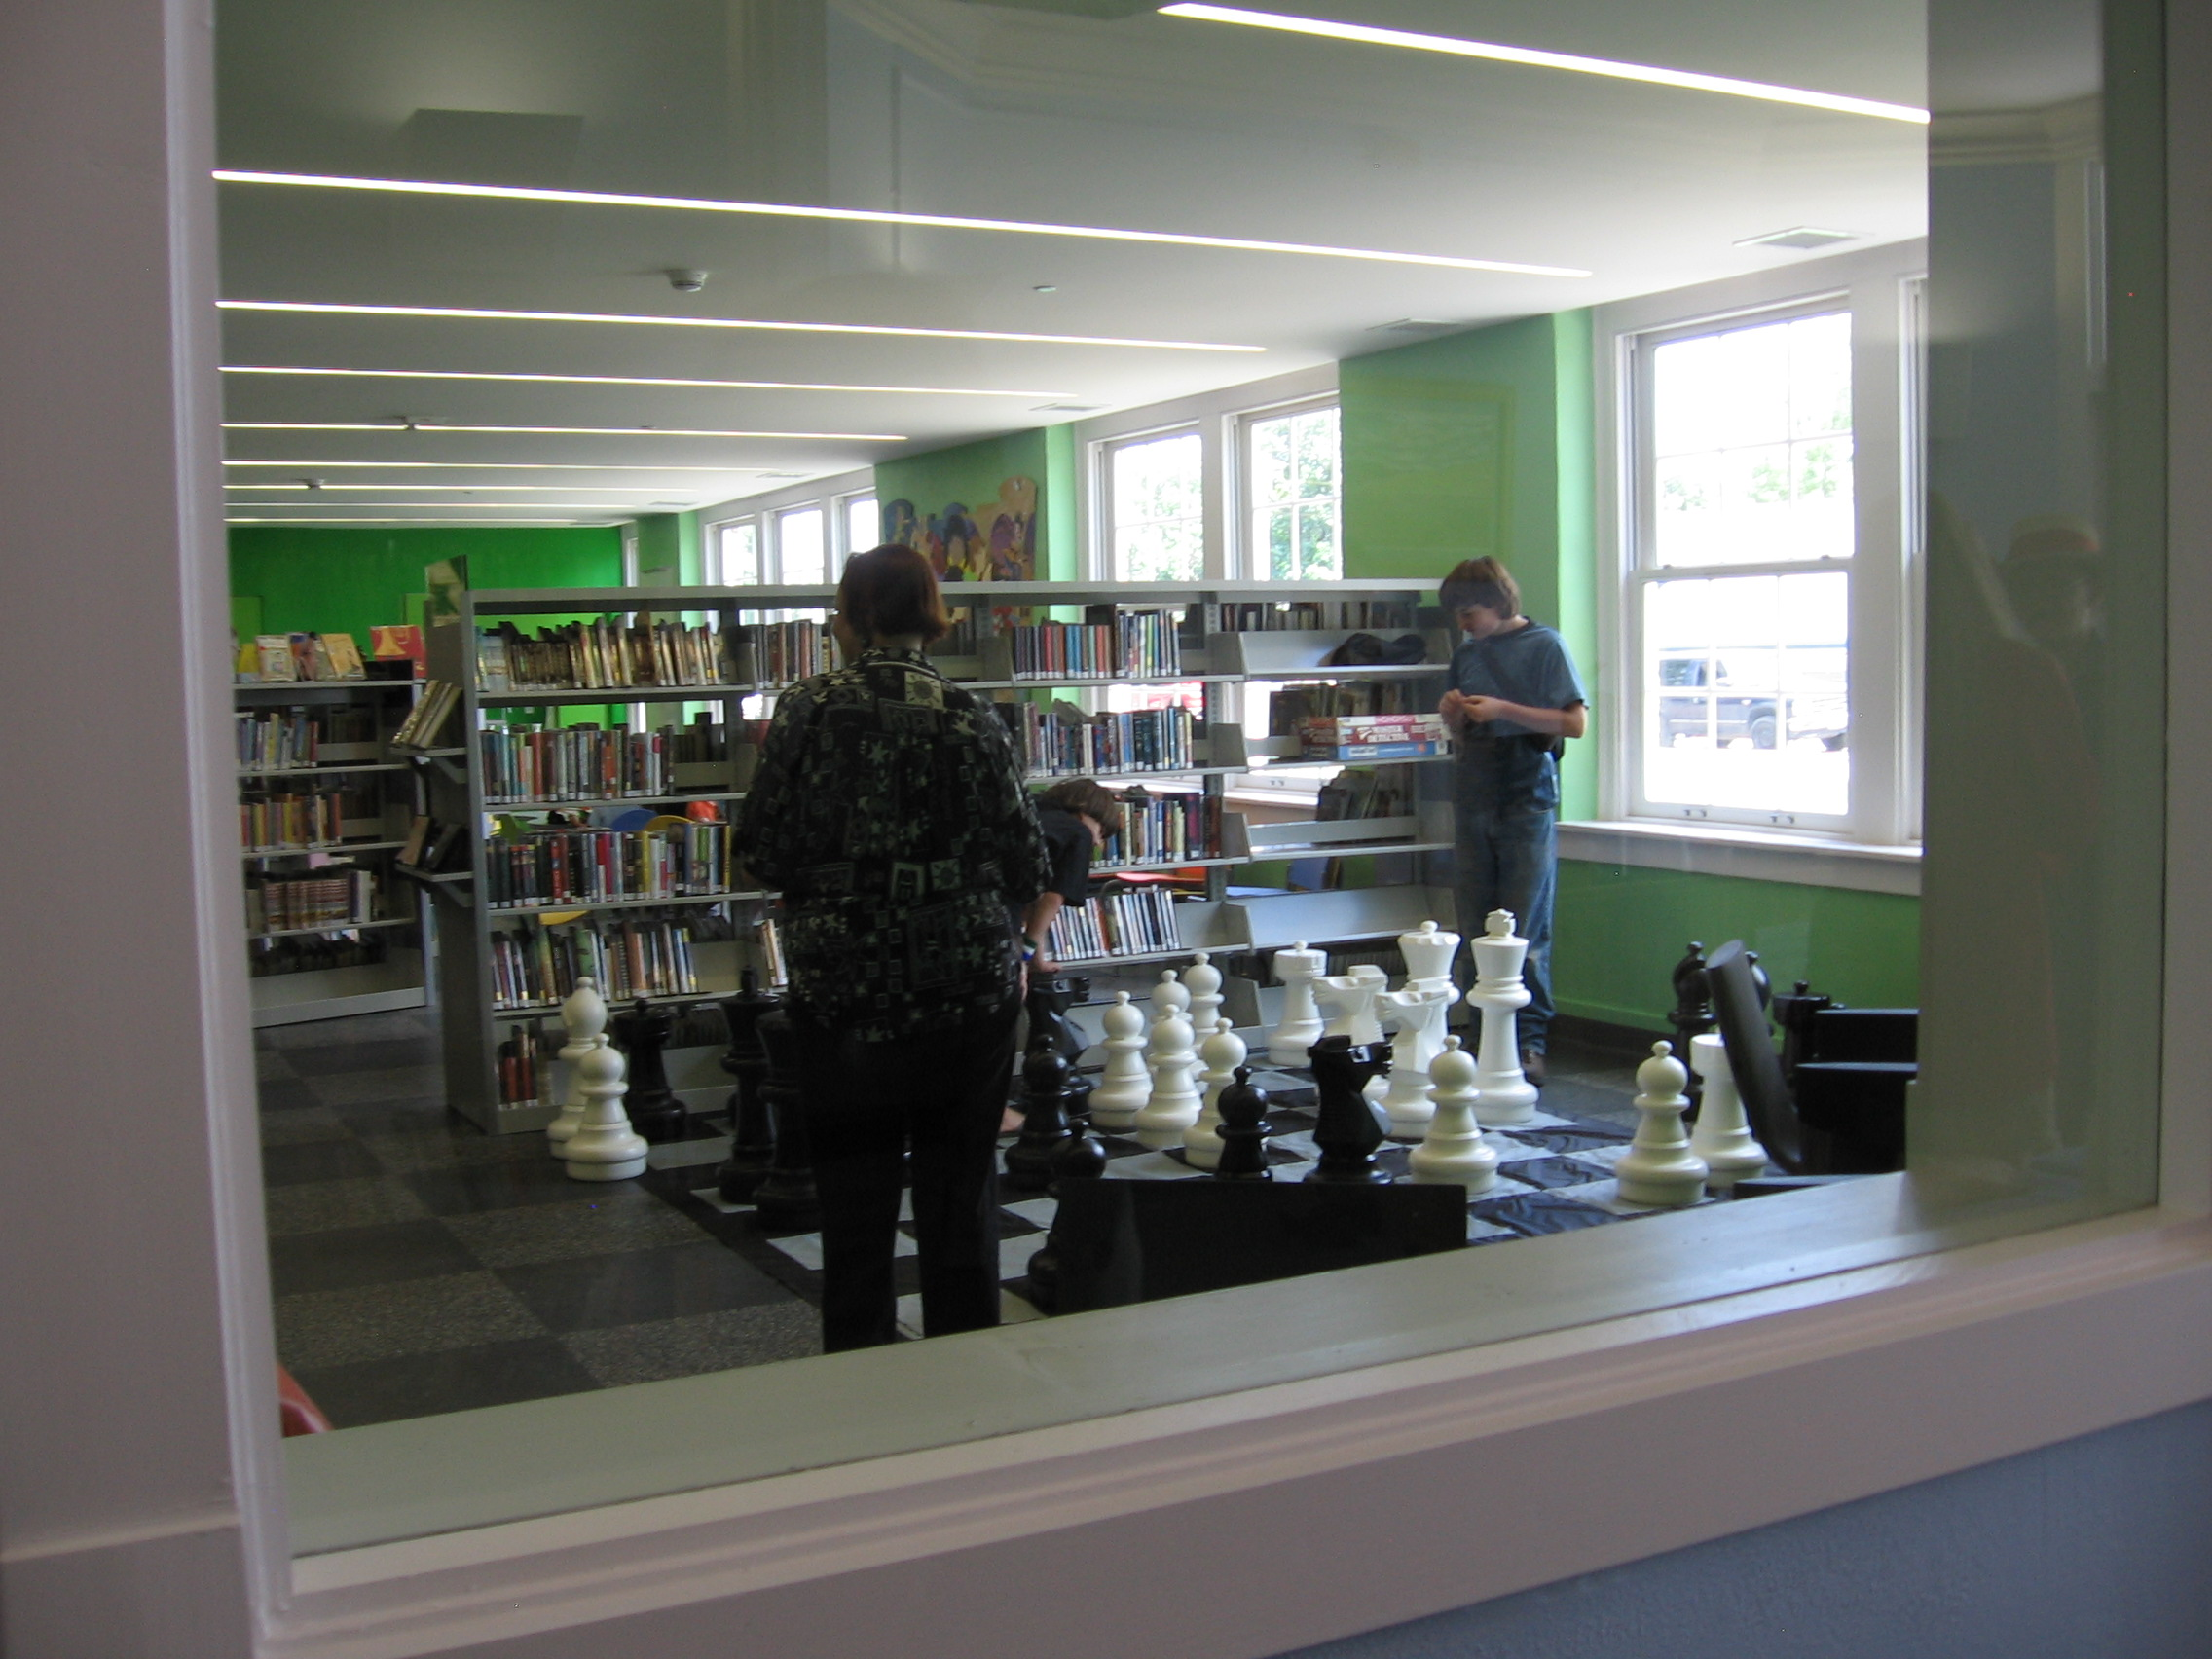 The view into the children's library